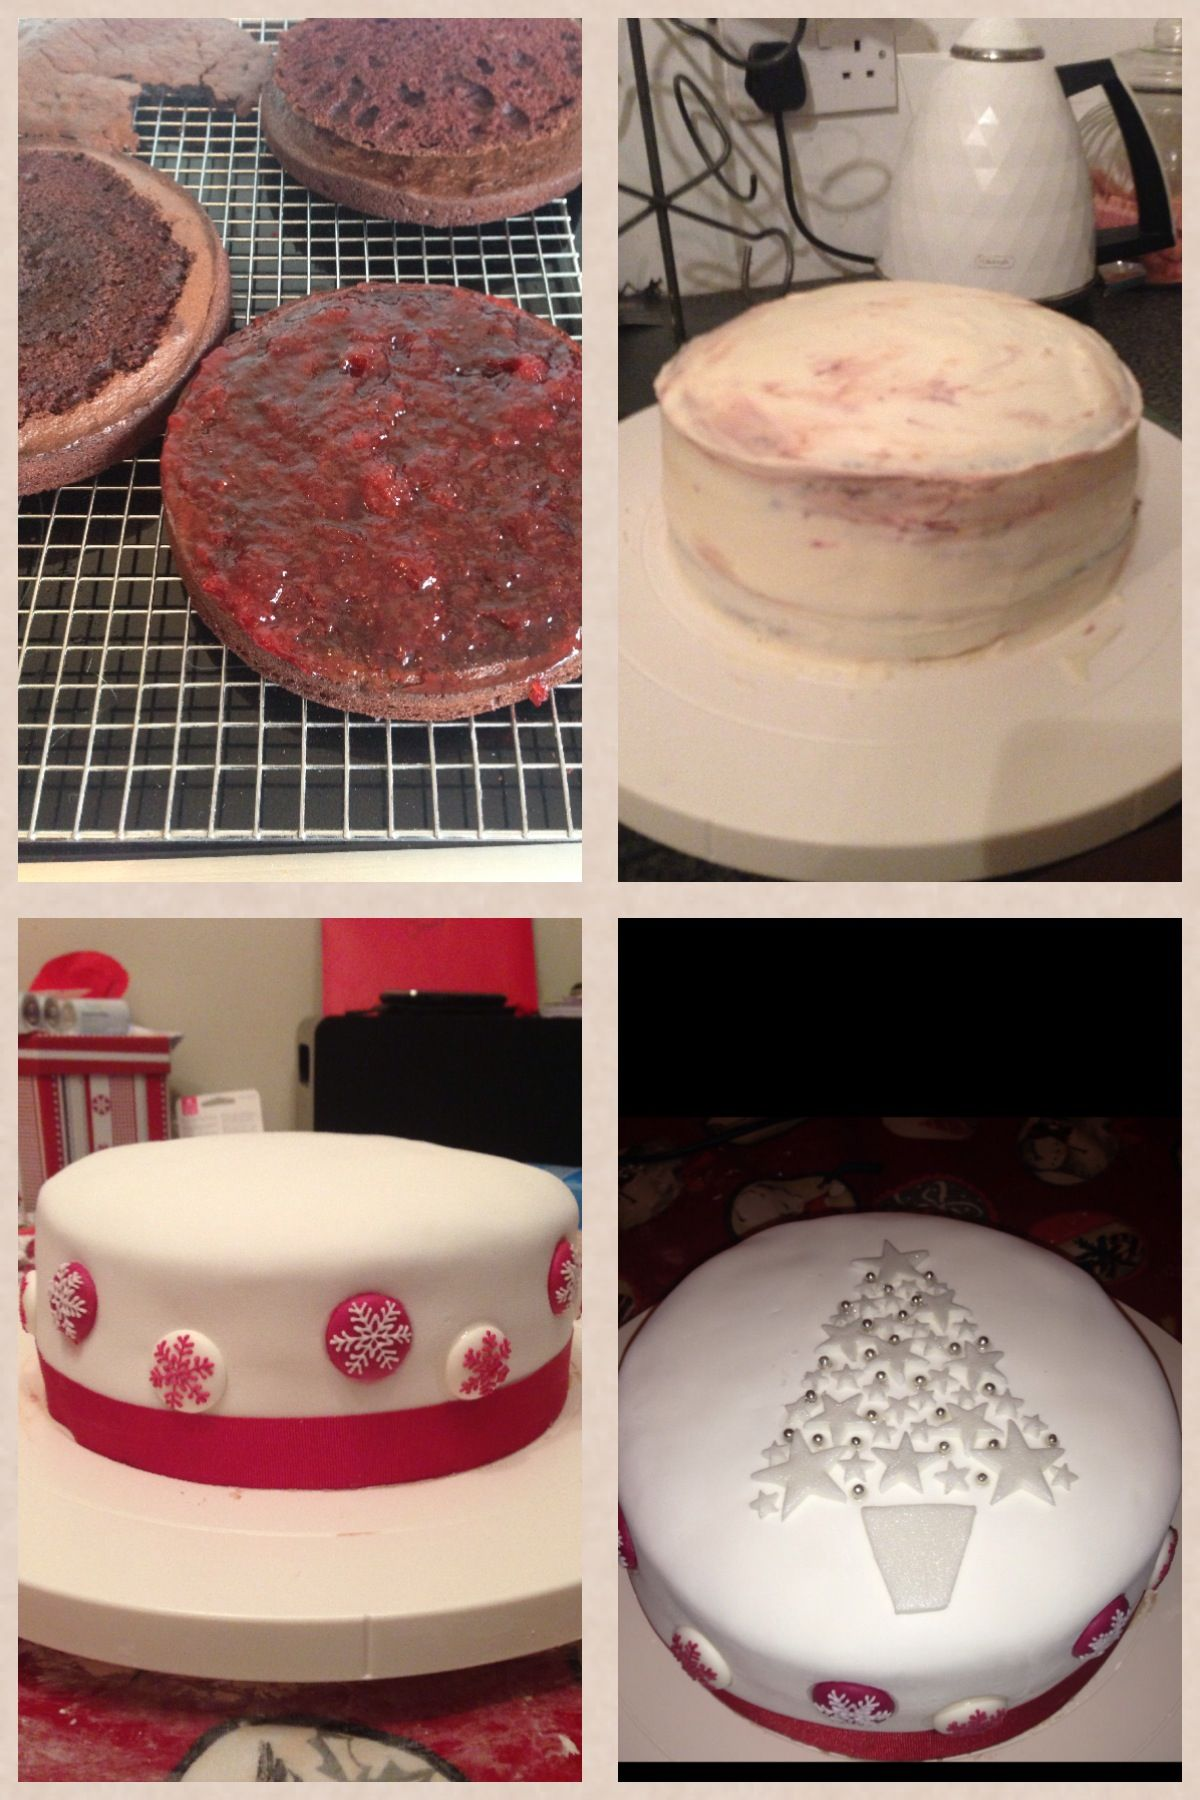 Fondant Christmas cake with wonderlust stars and edible snow flakes with strawberry conserve Jam and choc fudge sponge